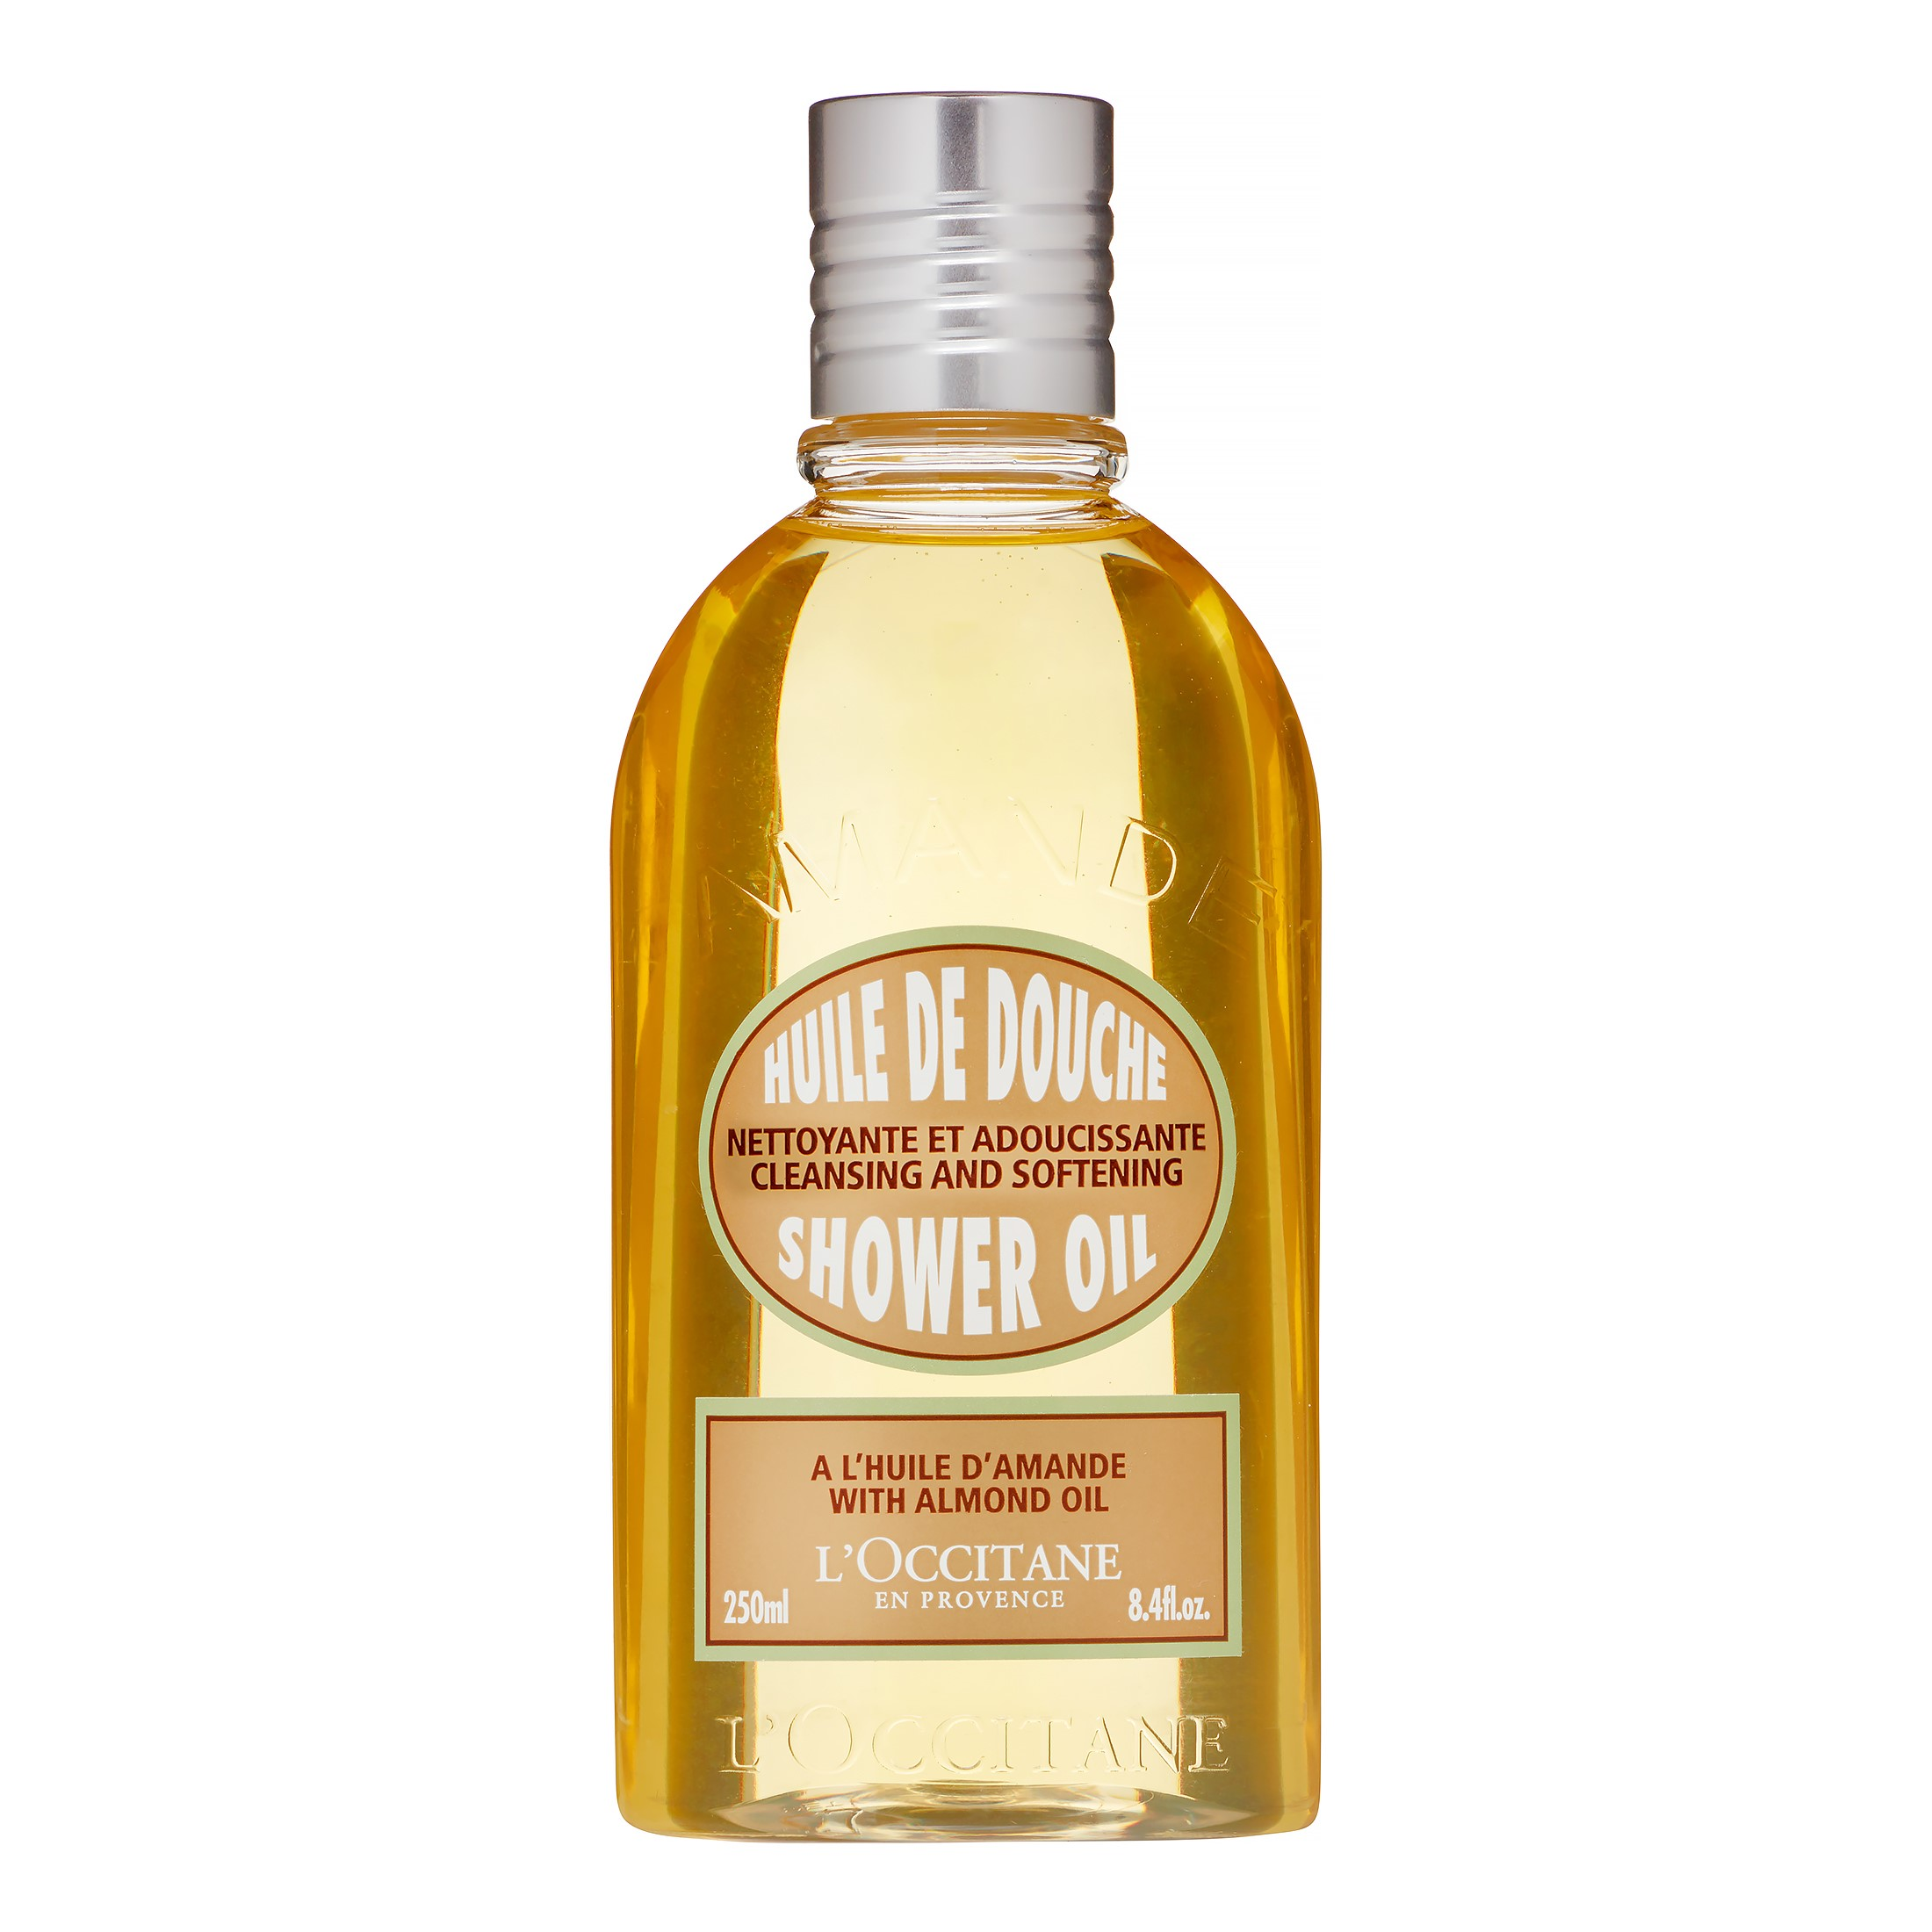 ( Value) L'Occitane Cleansing And Softening Shower Oil With Almond Oil, 8.4 Fl Oz